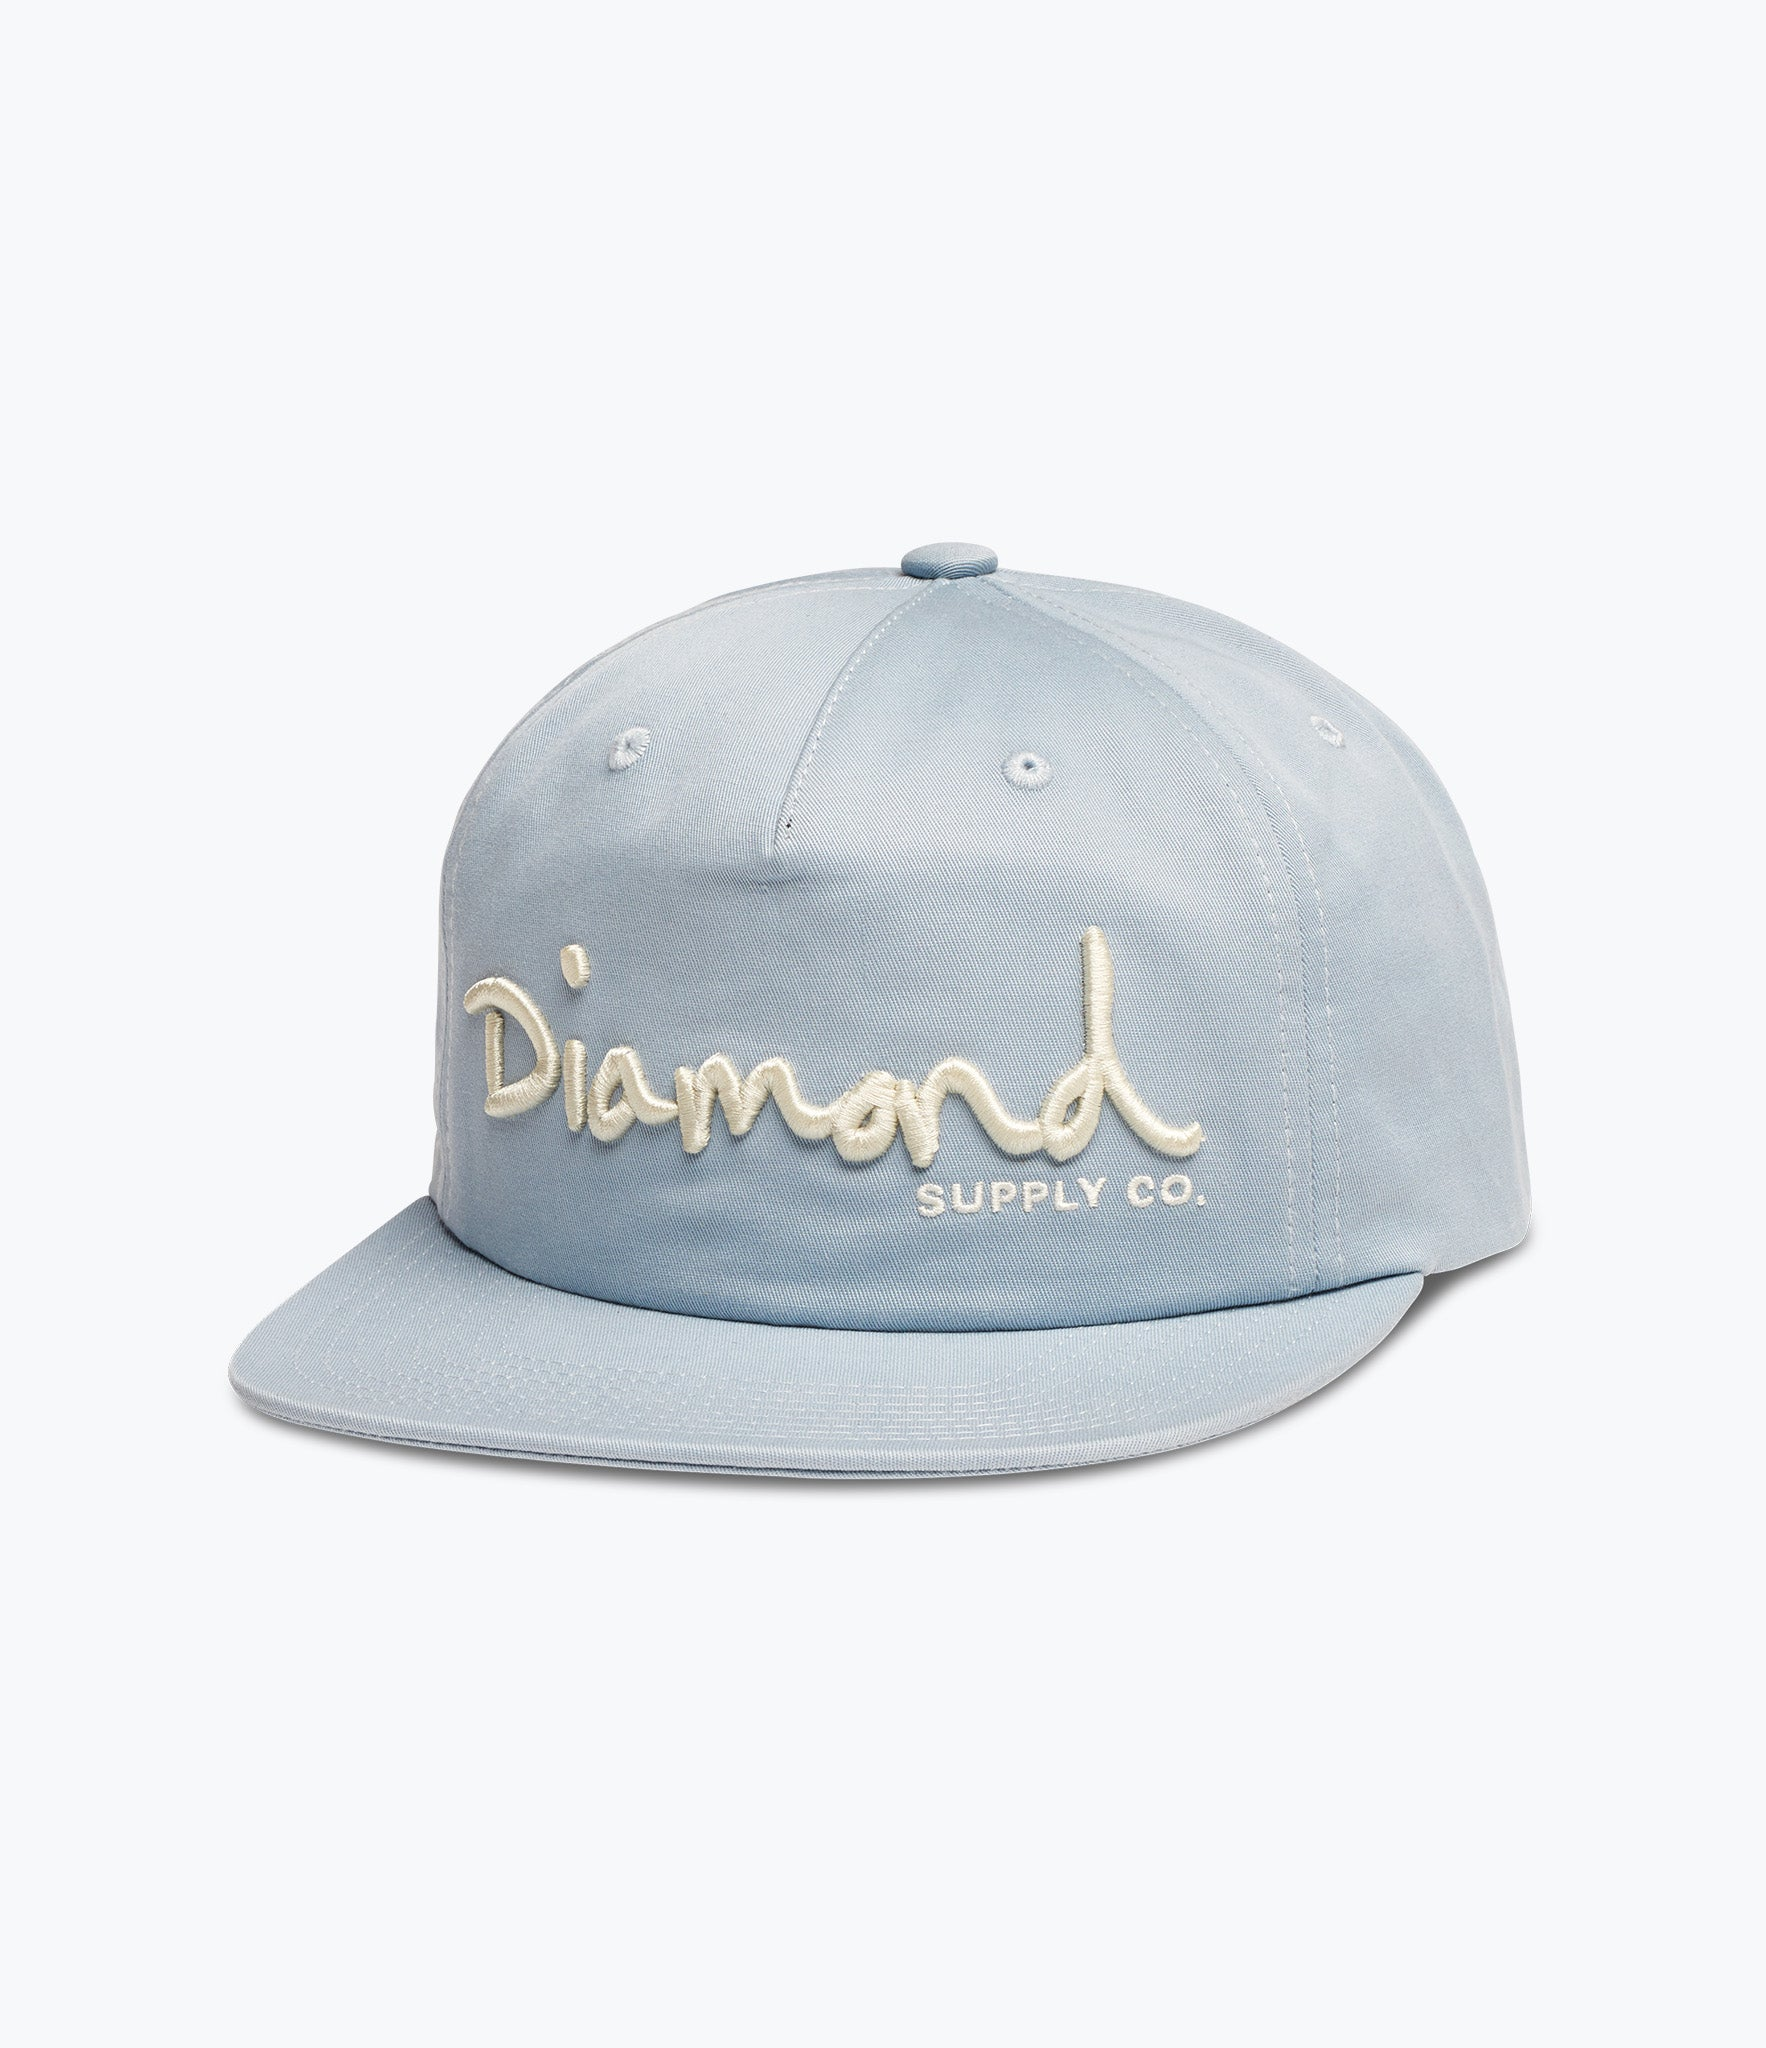 cc923dd558fb37 OG Script Snapback - Diamond Supply Co.